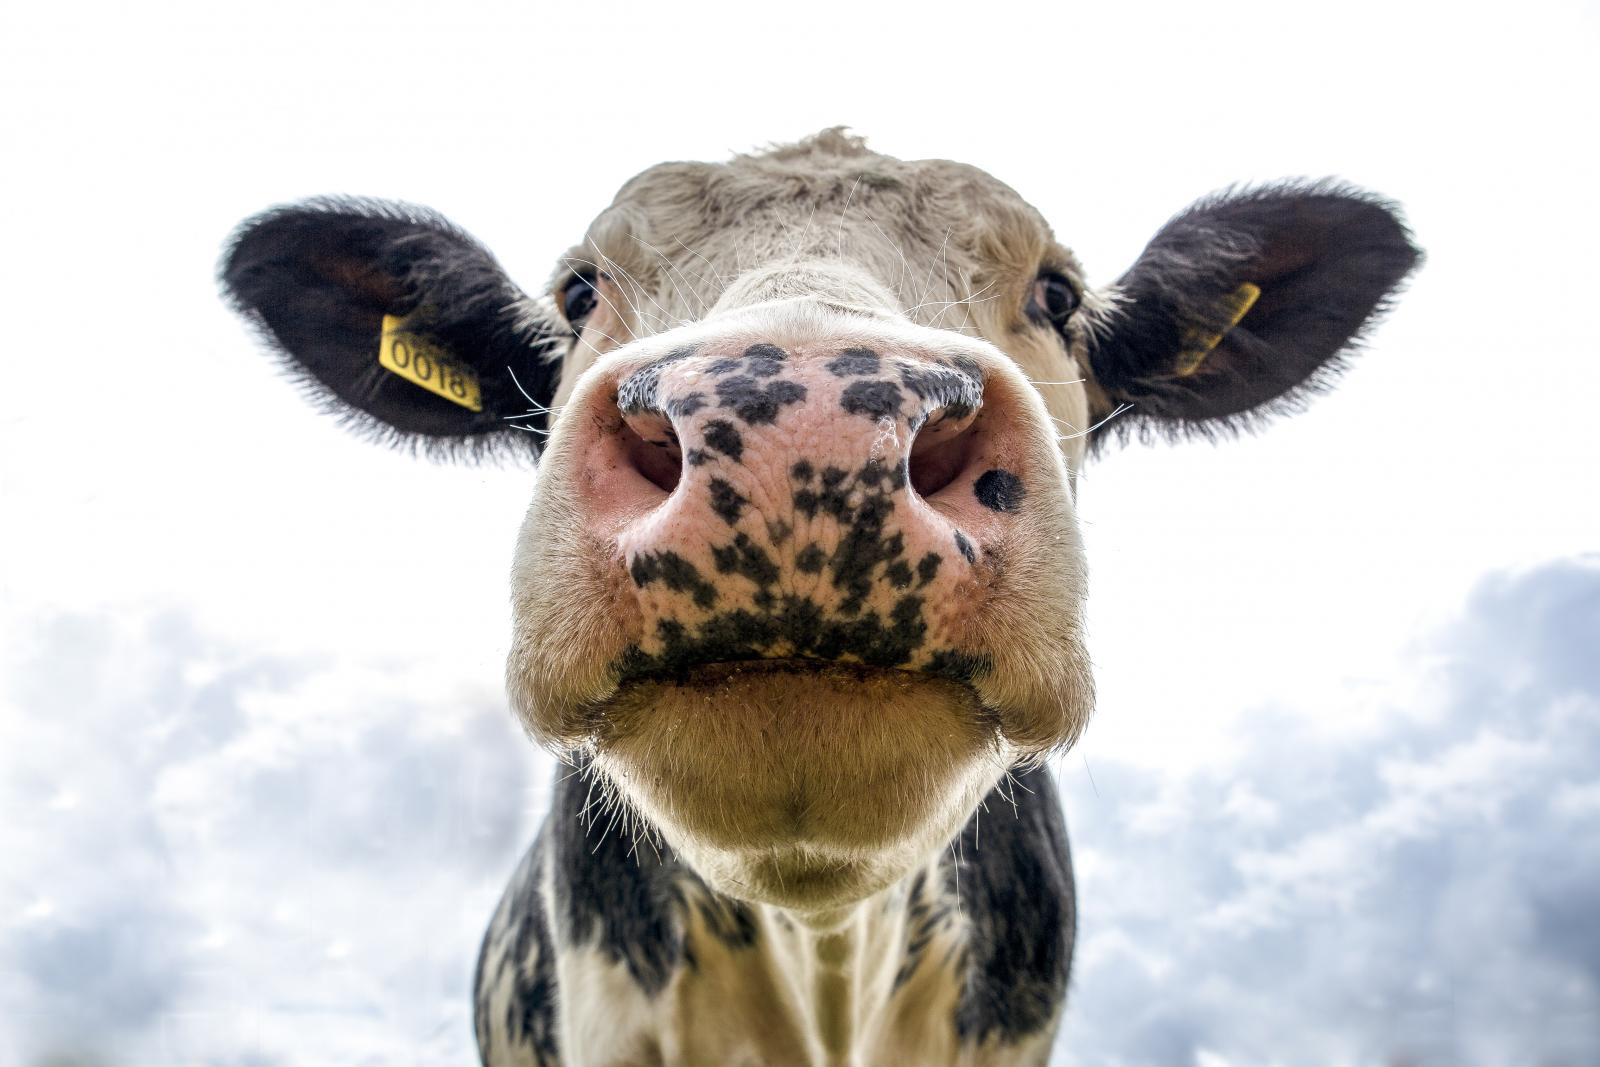 Cow face. Photo credit; Pexels